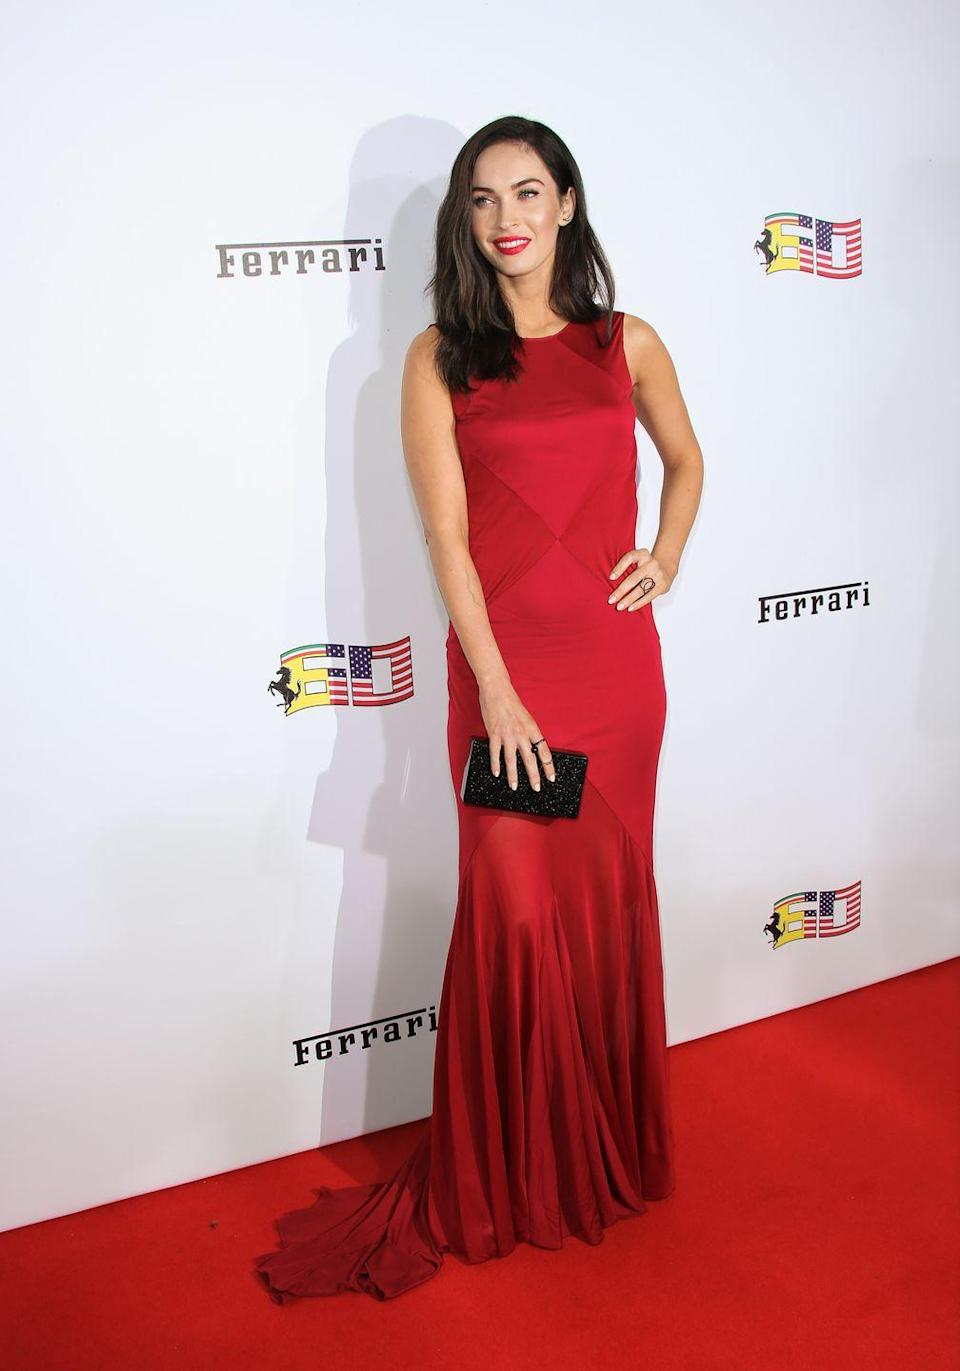 <p>Fox wore a red Versace gown for hear appearance at the event. She styled the look with a black box clutch and red lipstick. </p>